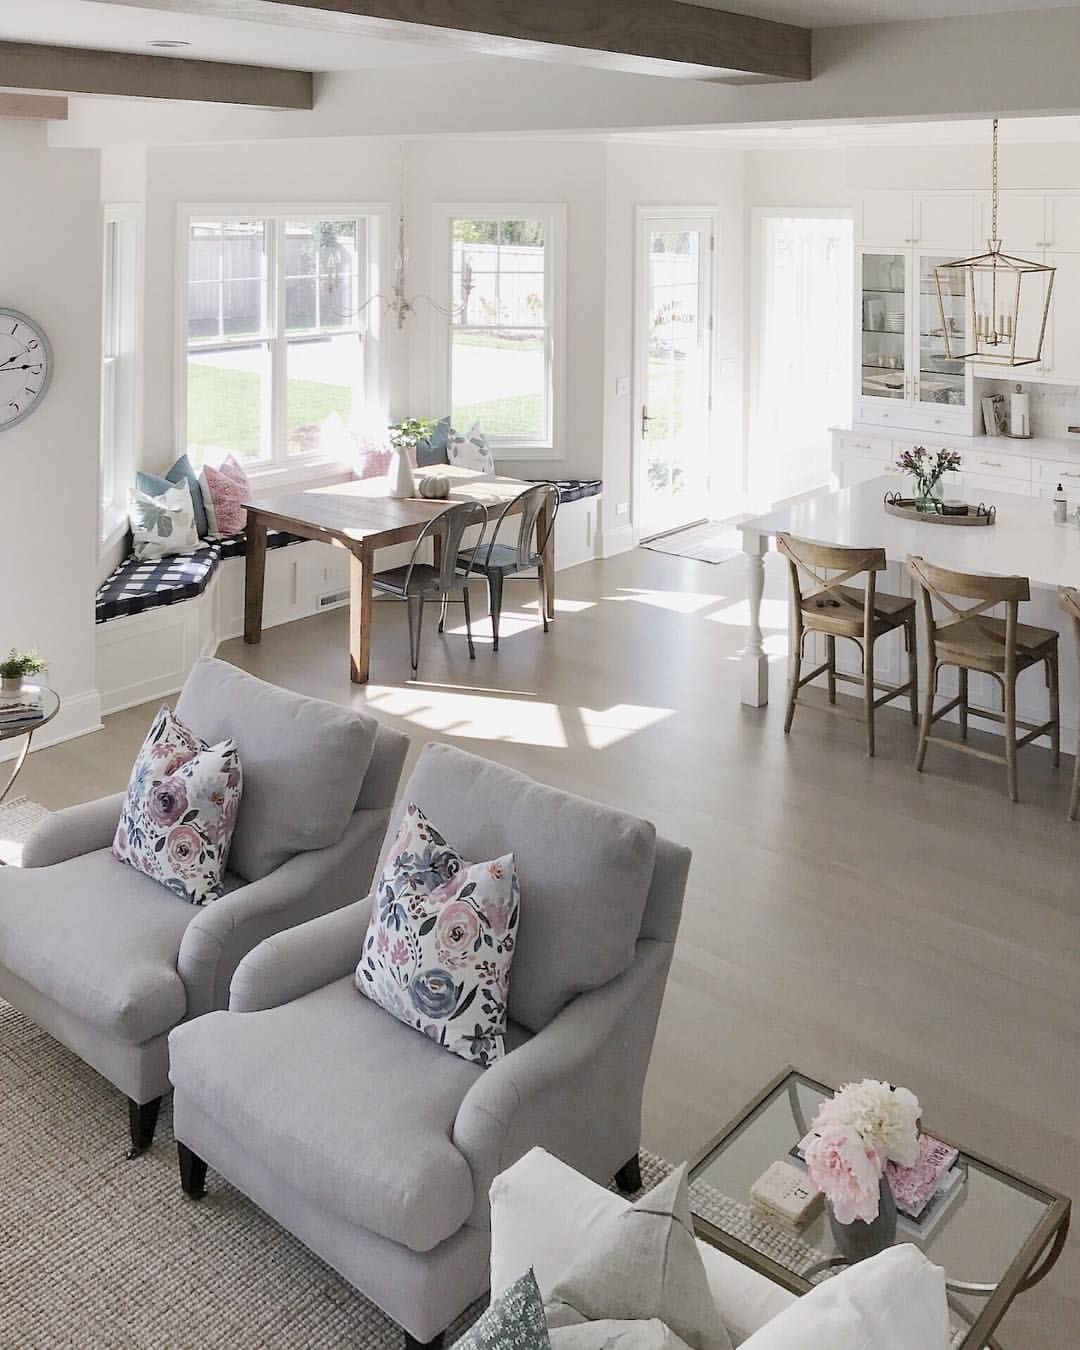 Open Concept Kitchen And Living Room Décor: @lifeoncedarlane Living Room Decor, Open Concept, Open